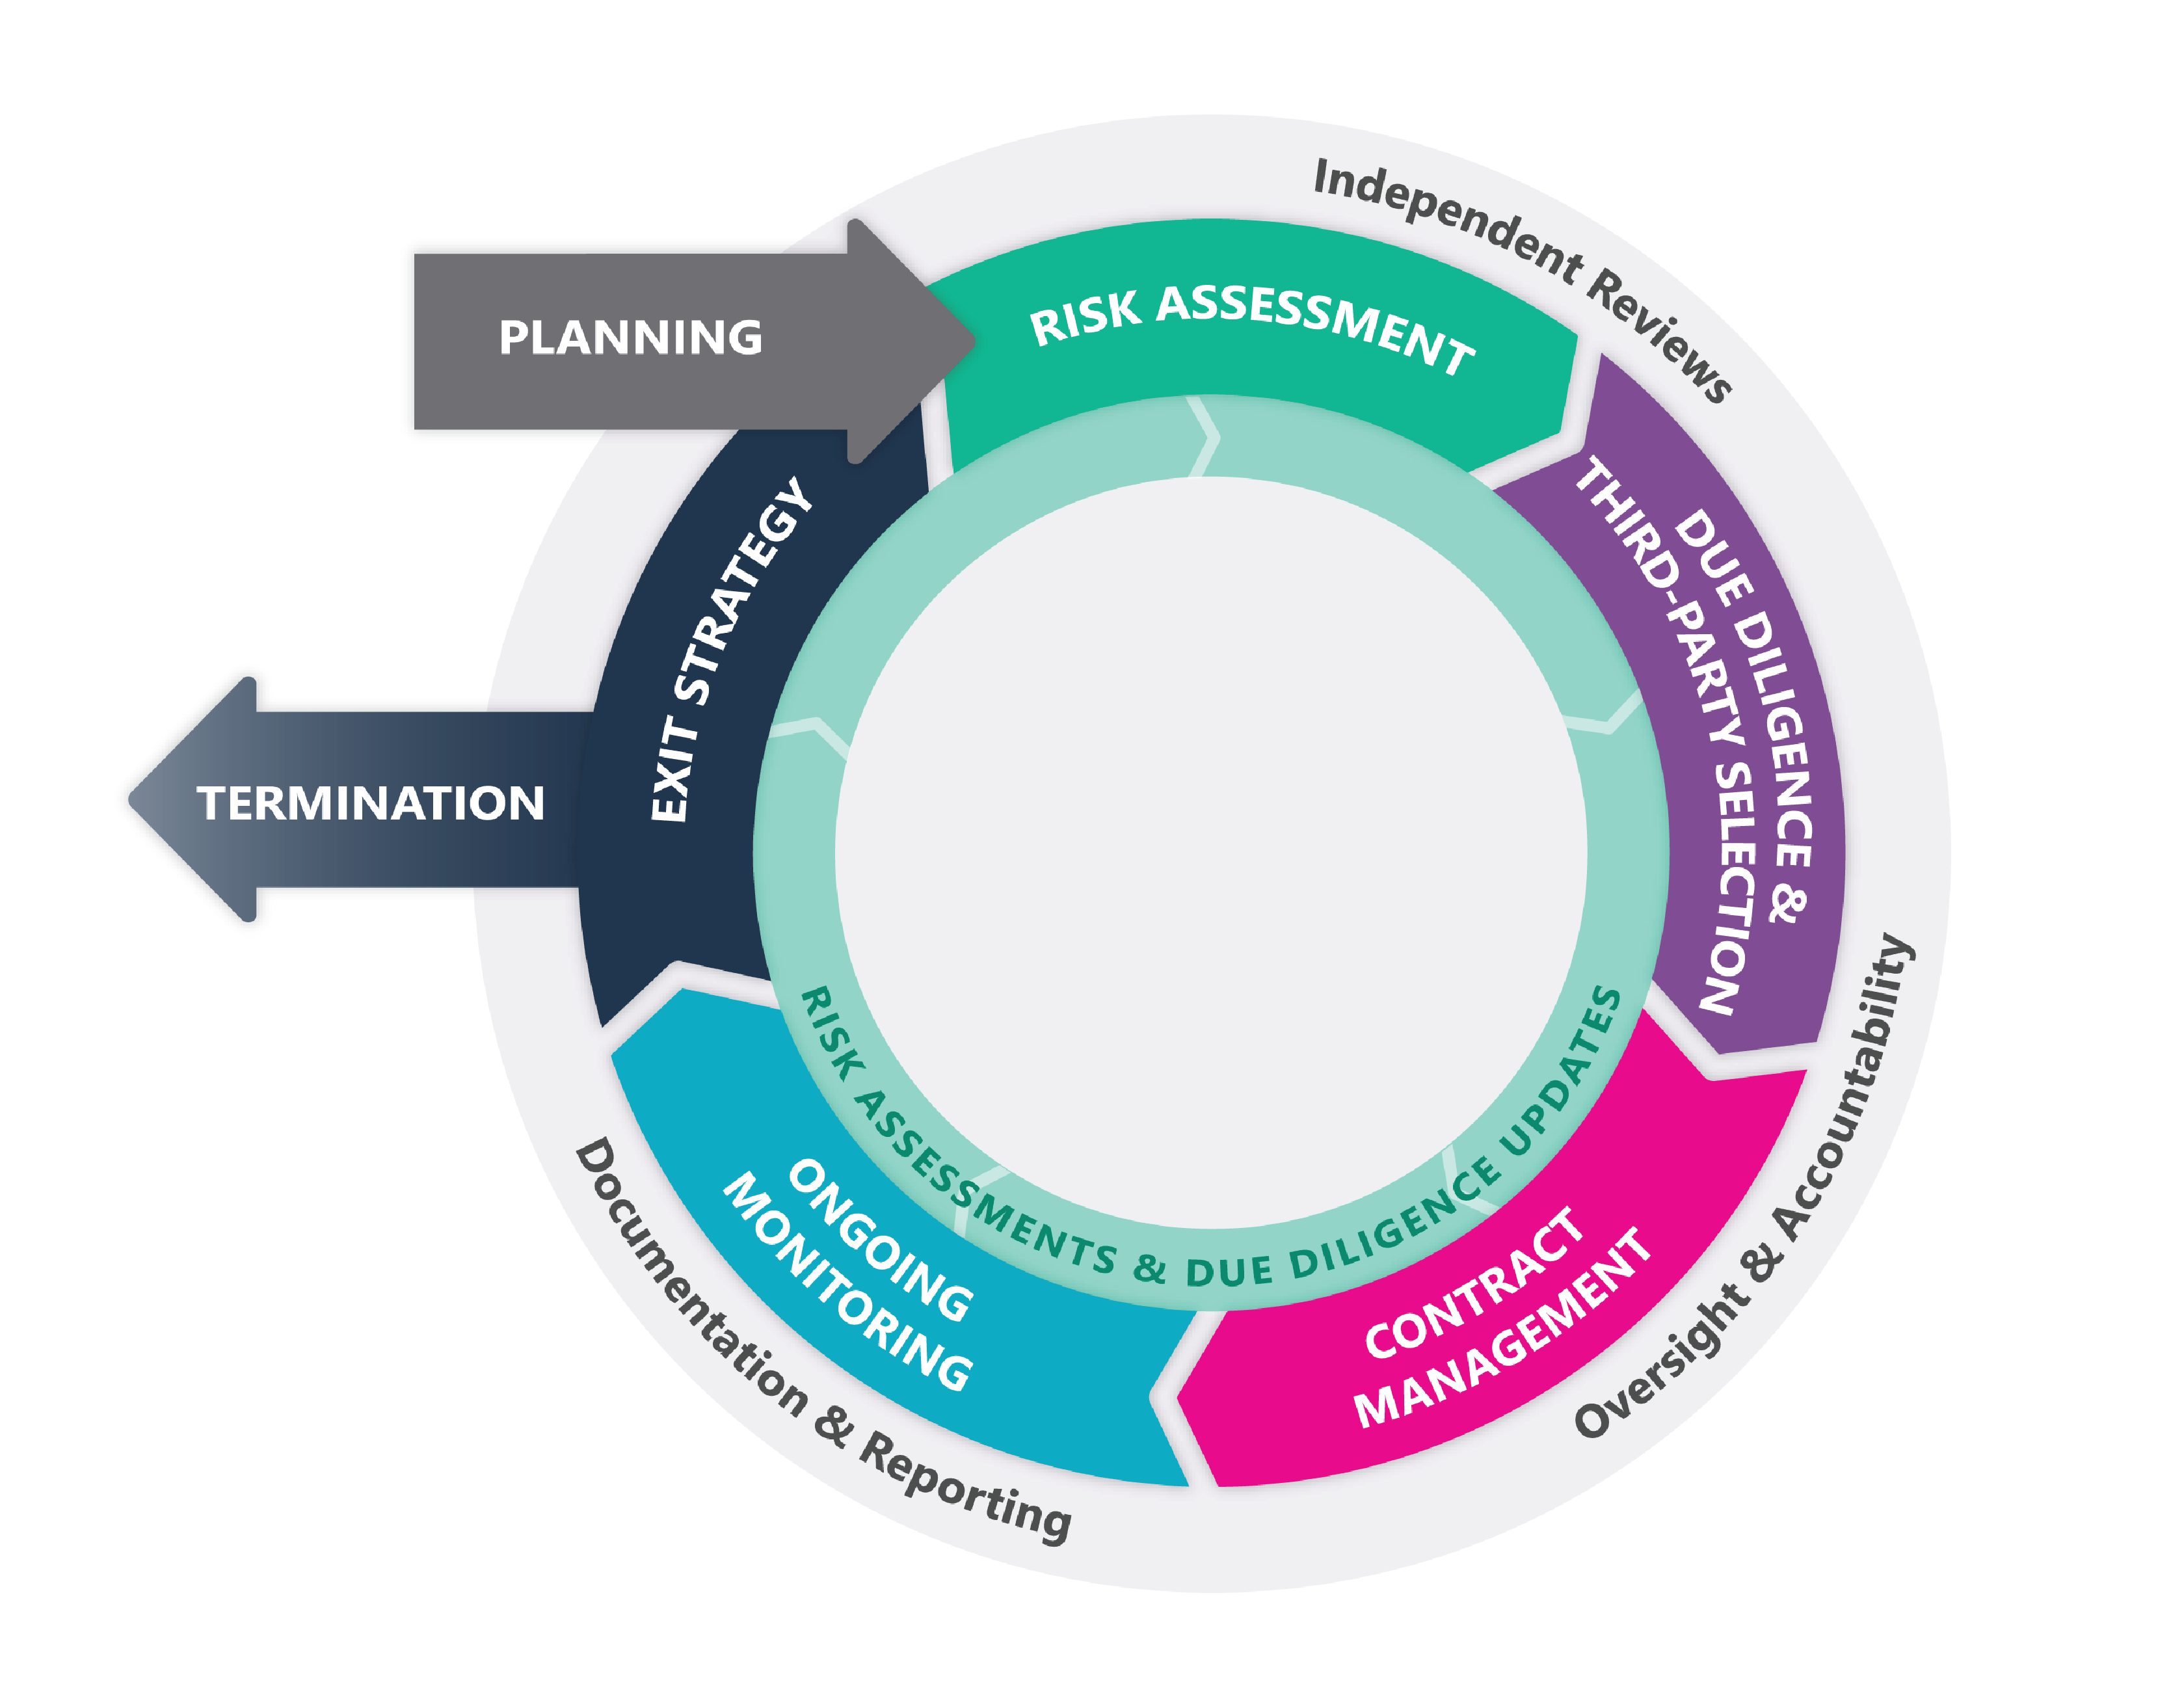 infographic-resources-the-stages-third-party-risk-management-lifecycle